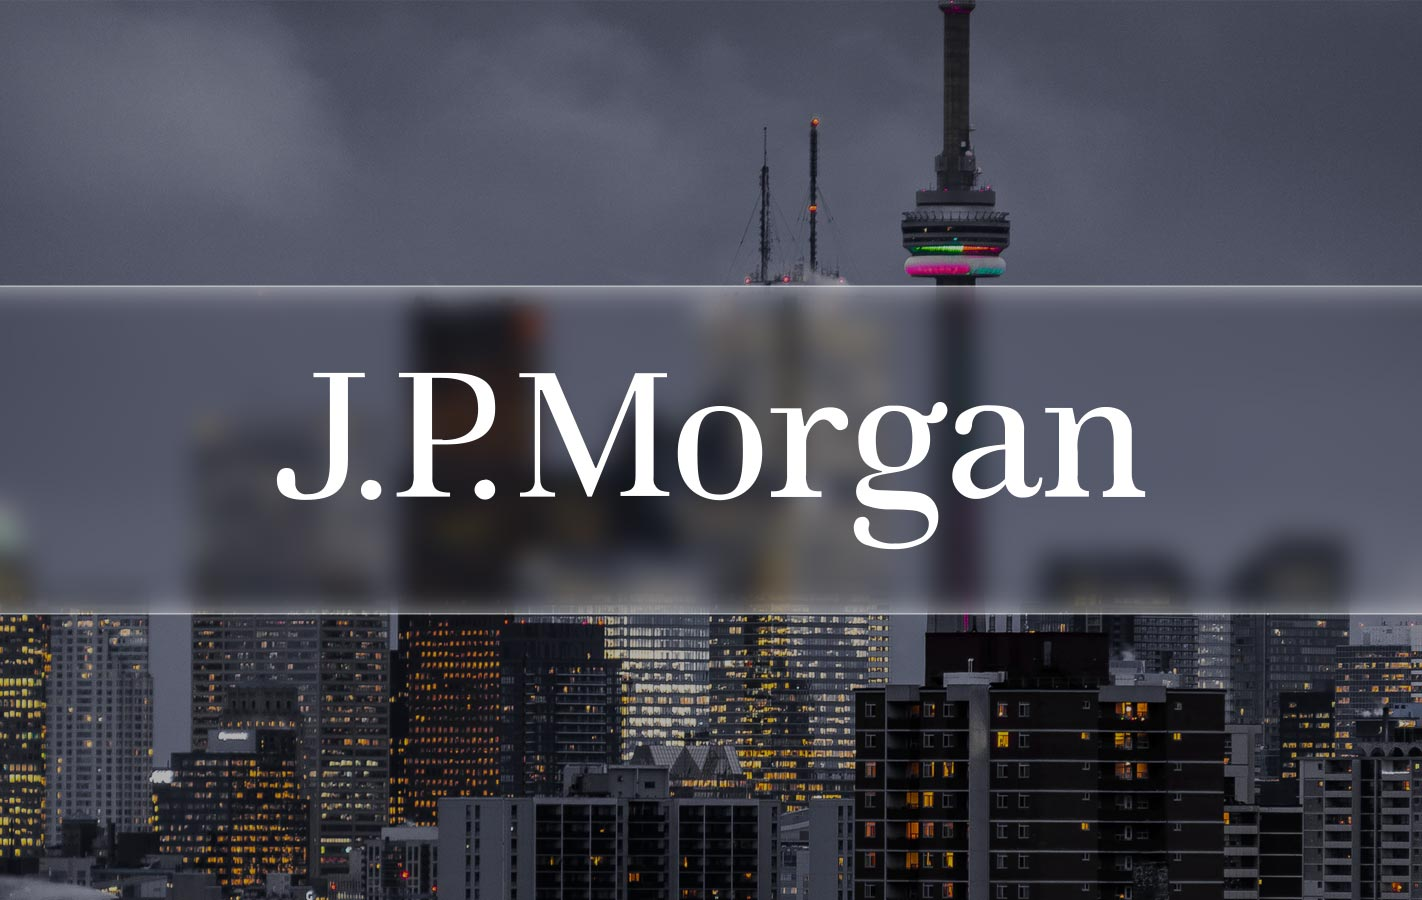 JP Morgan Q1 Earnings Call Overview